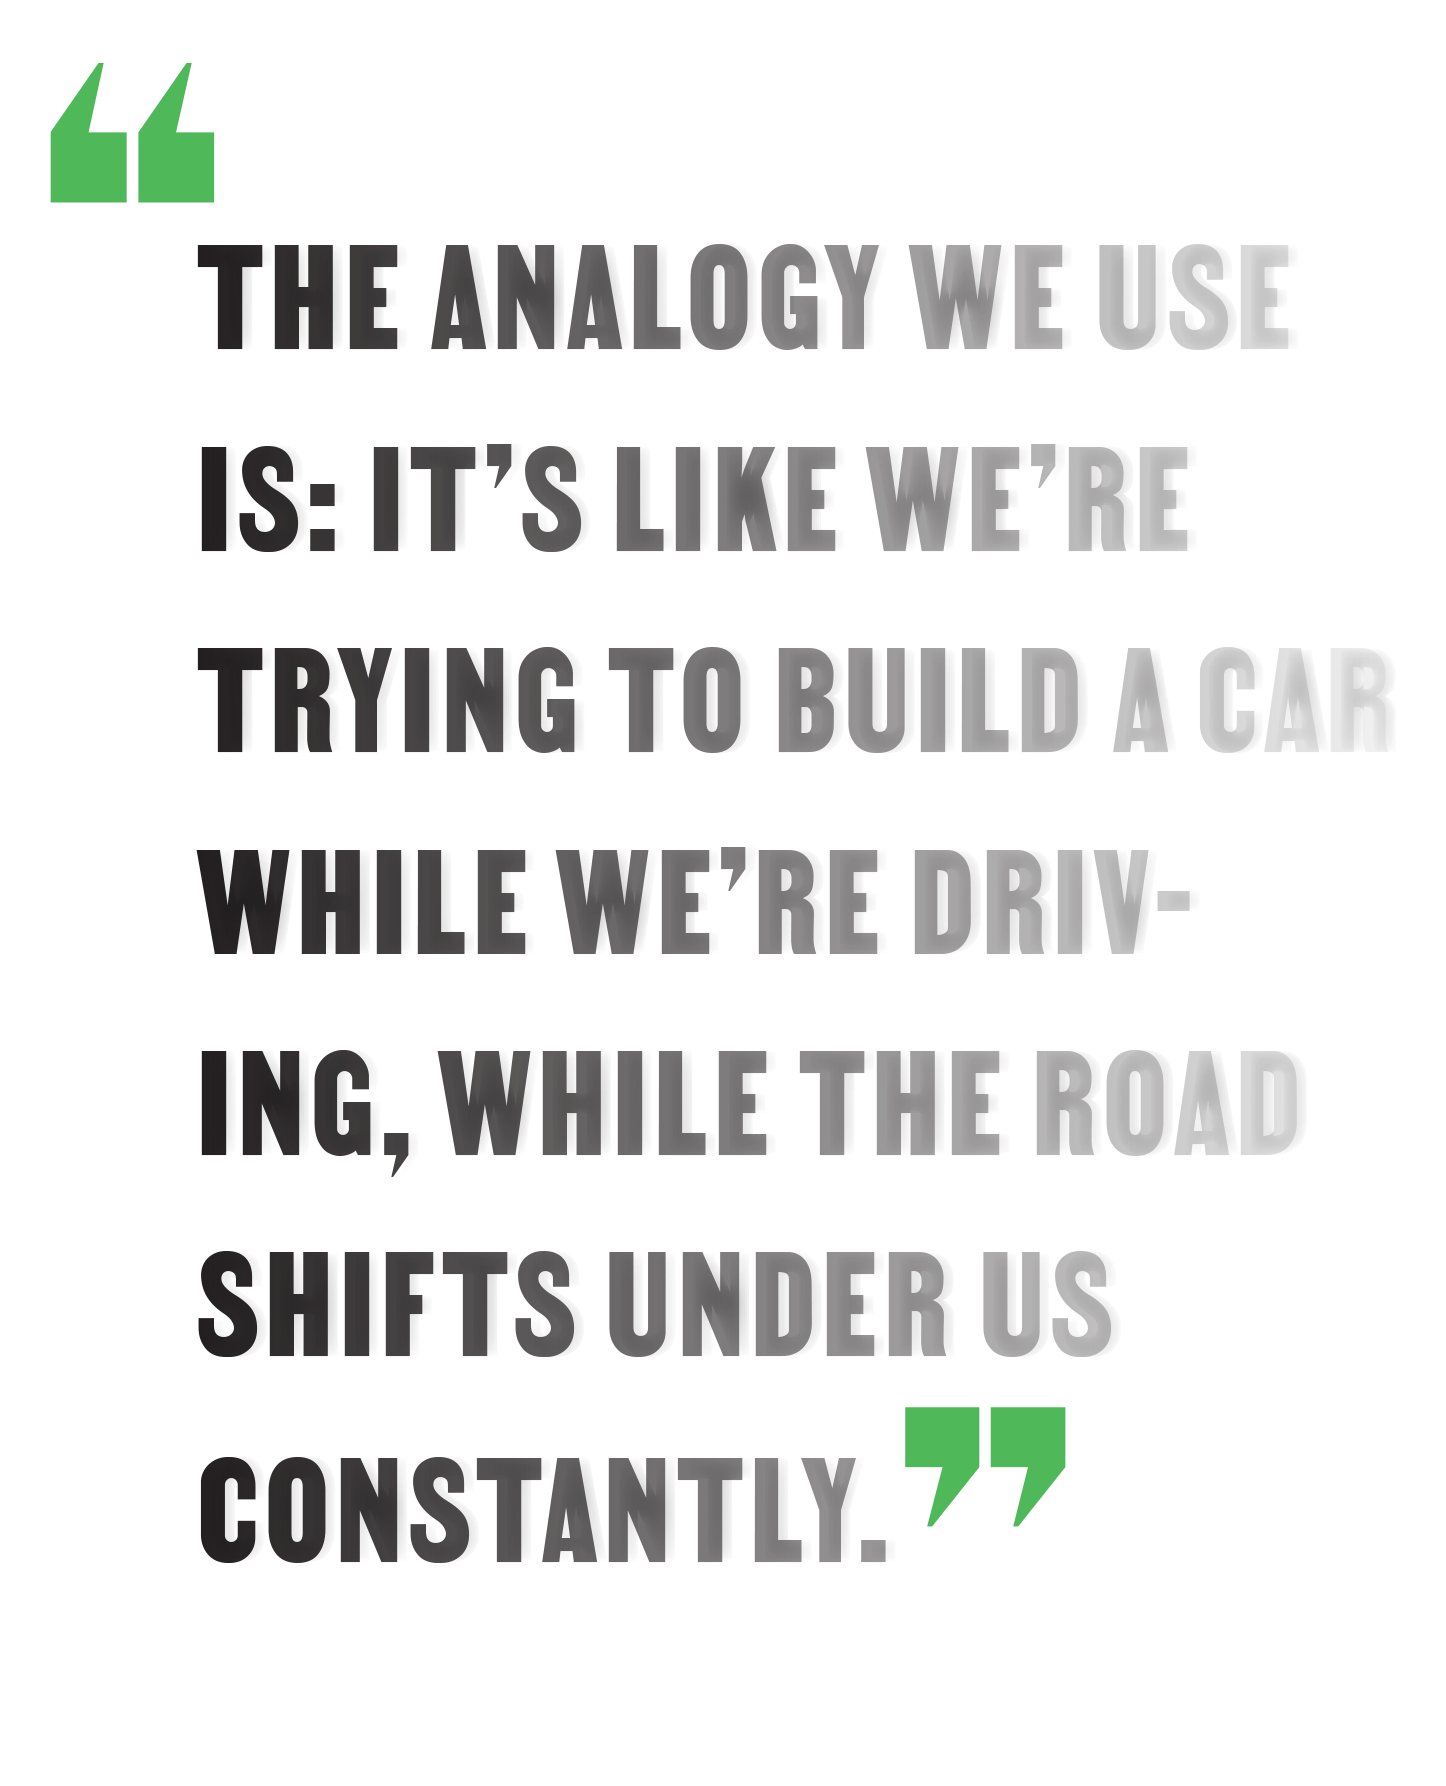 """""""The analogy we use is: It's like we're trying to build a car while we're driving, while the road shifts under us constantly."""""""